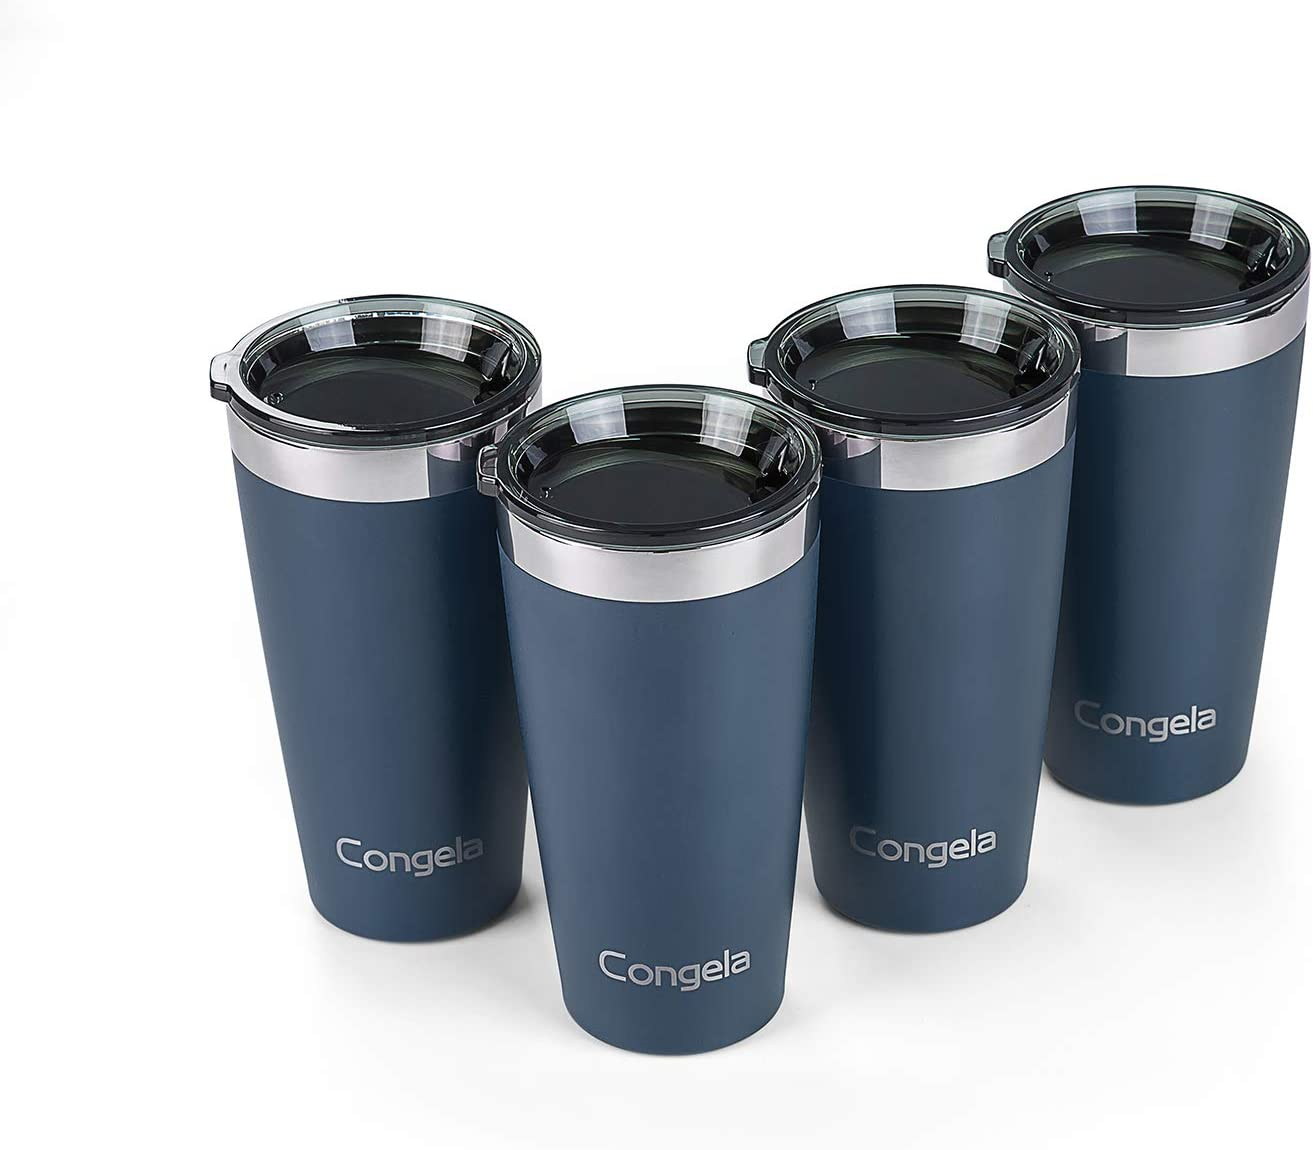 Congela 16oz stainless steel 40% OFF Cheap Sale Great interest insulated with lids pint s glasses